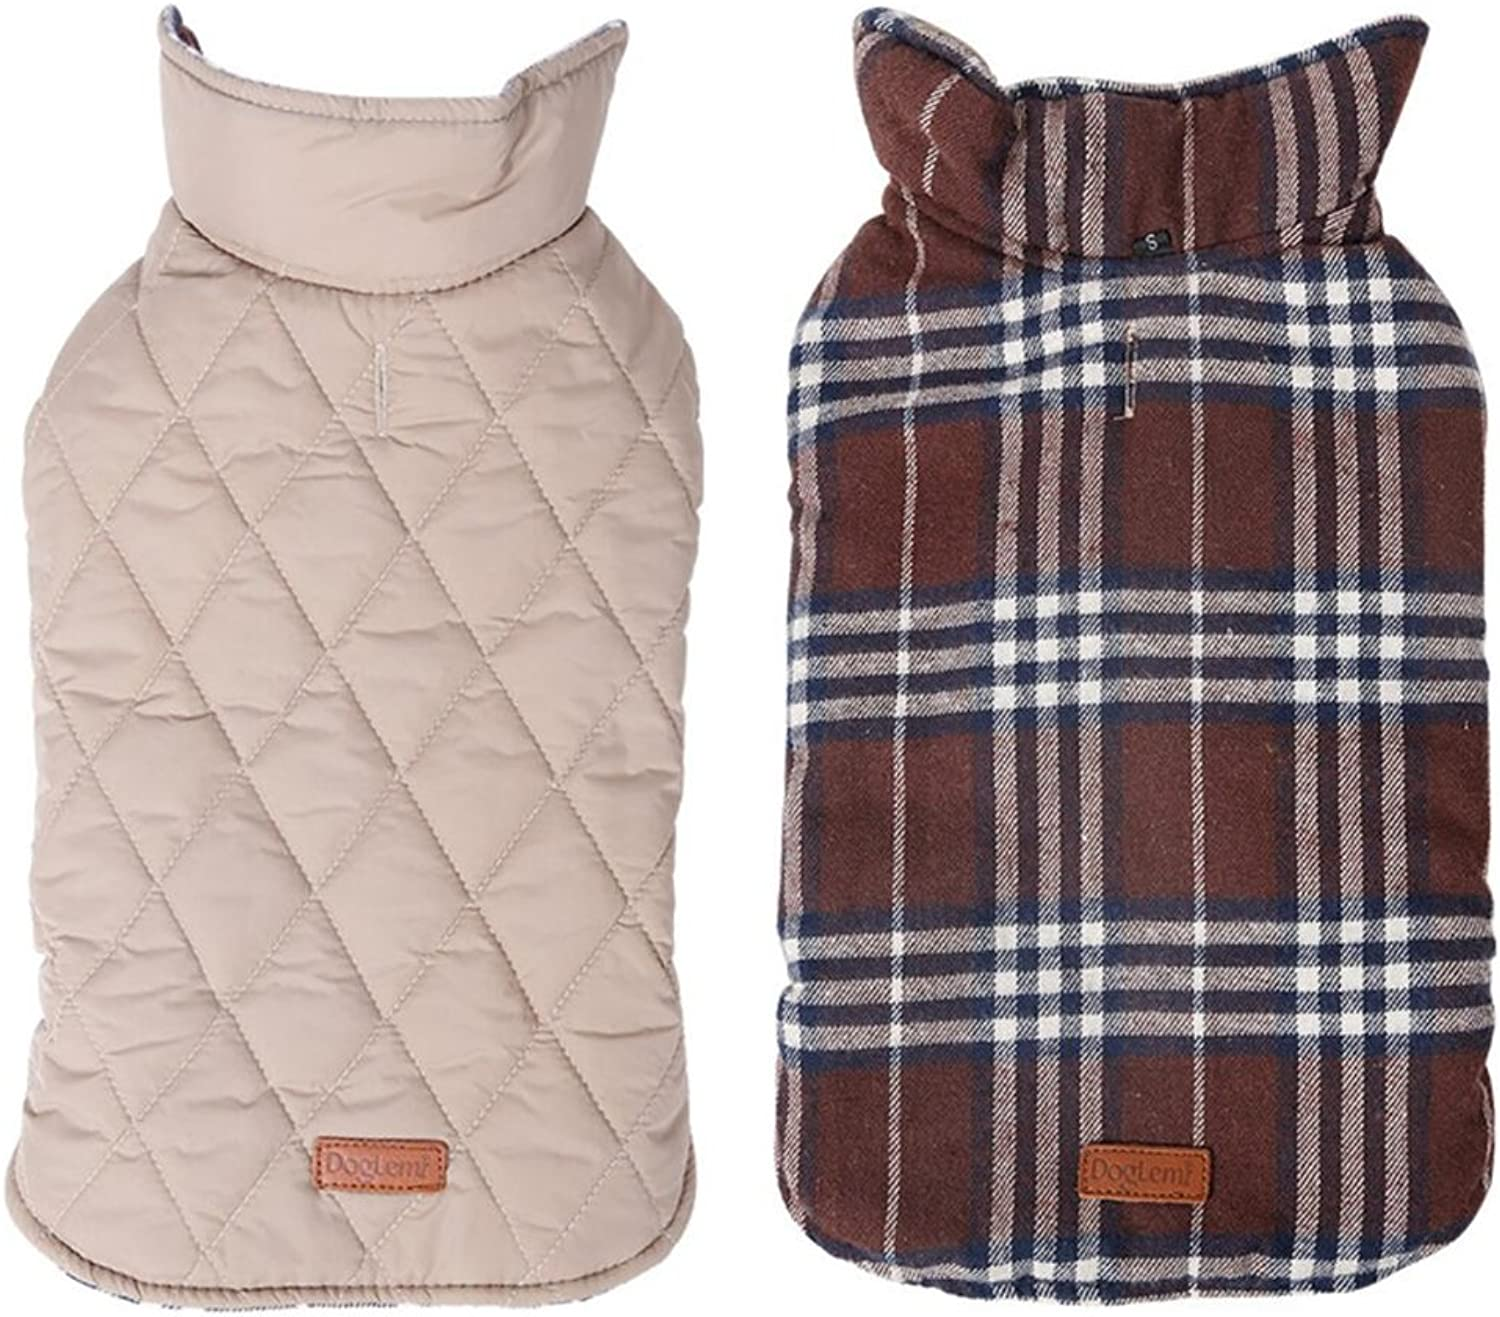 Delifur Waterproof Dog Plaid Jacket Dog Jackets for Winter Dog Winter Coat Cotton Coat Reversible to Wear Warm Clothes for Small Medium Large Dogs (3XL, Brown)